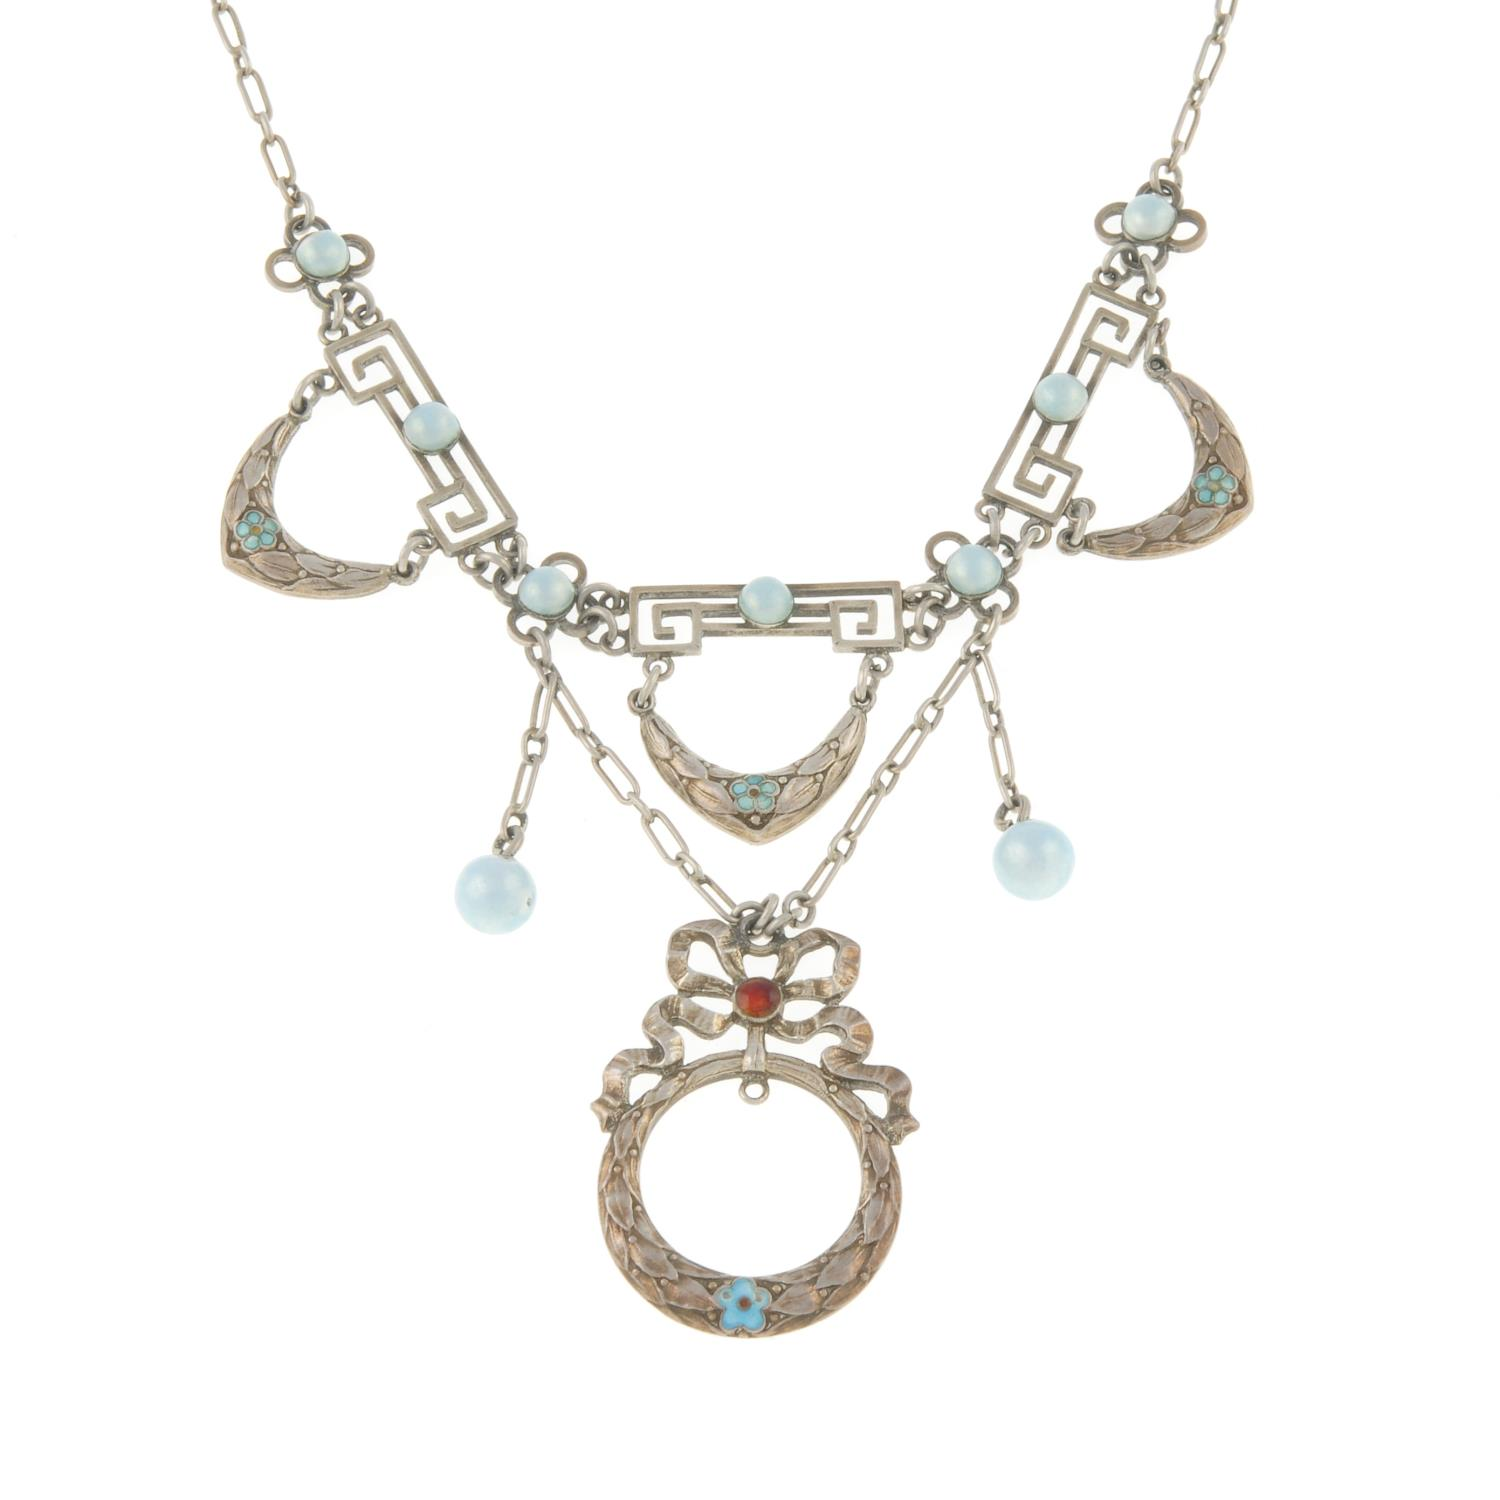 An Edwardian enamel necklace with suspended enamel drops, by Marius Hammer.